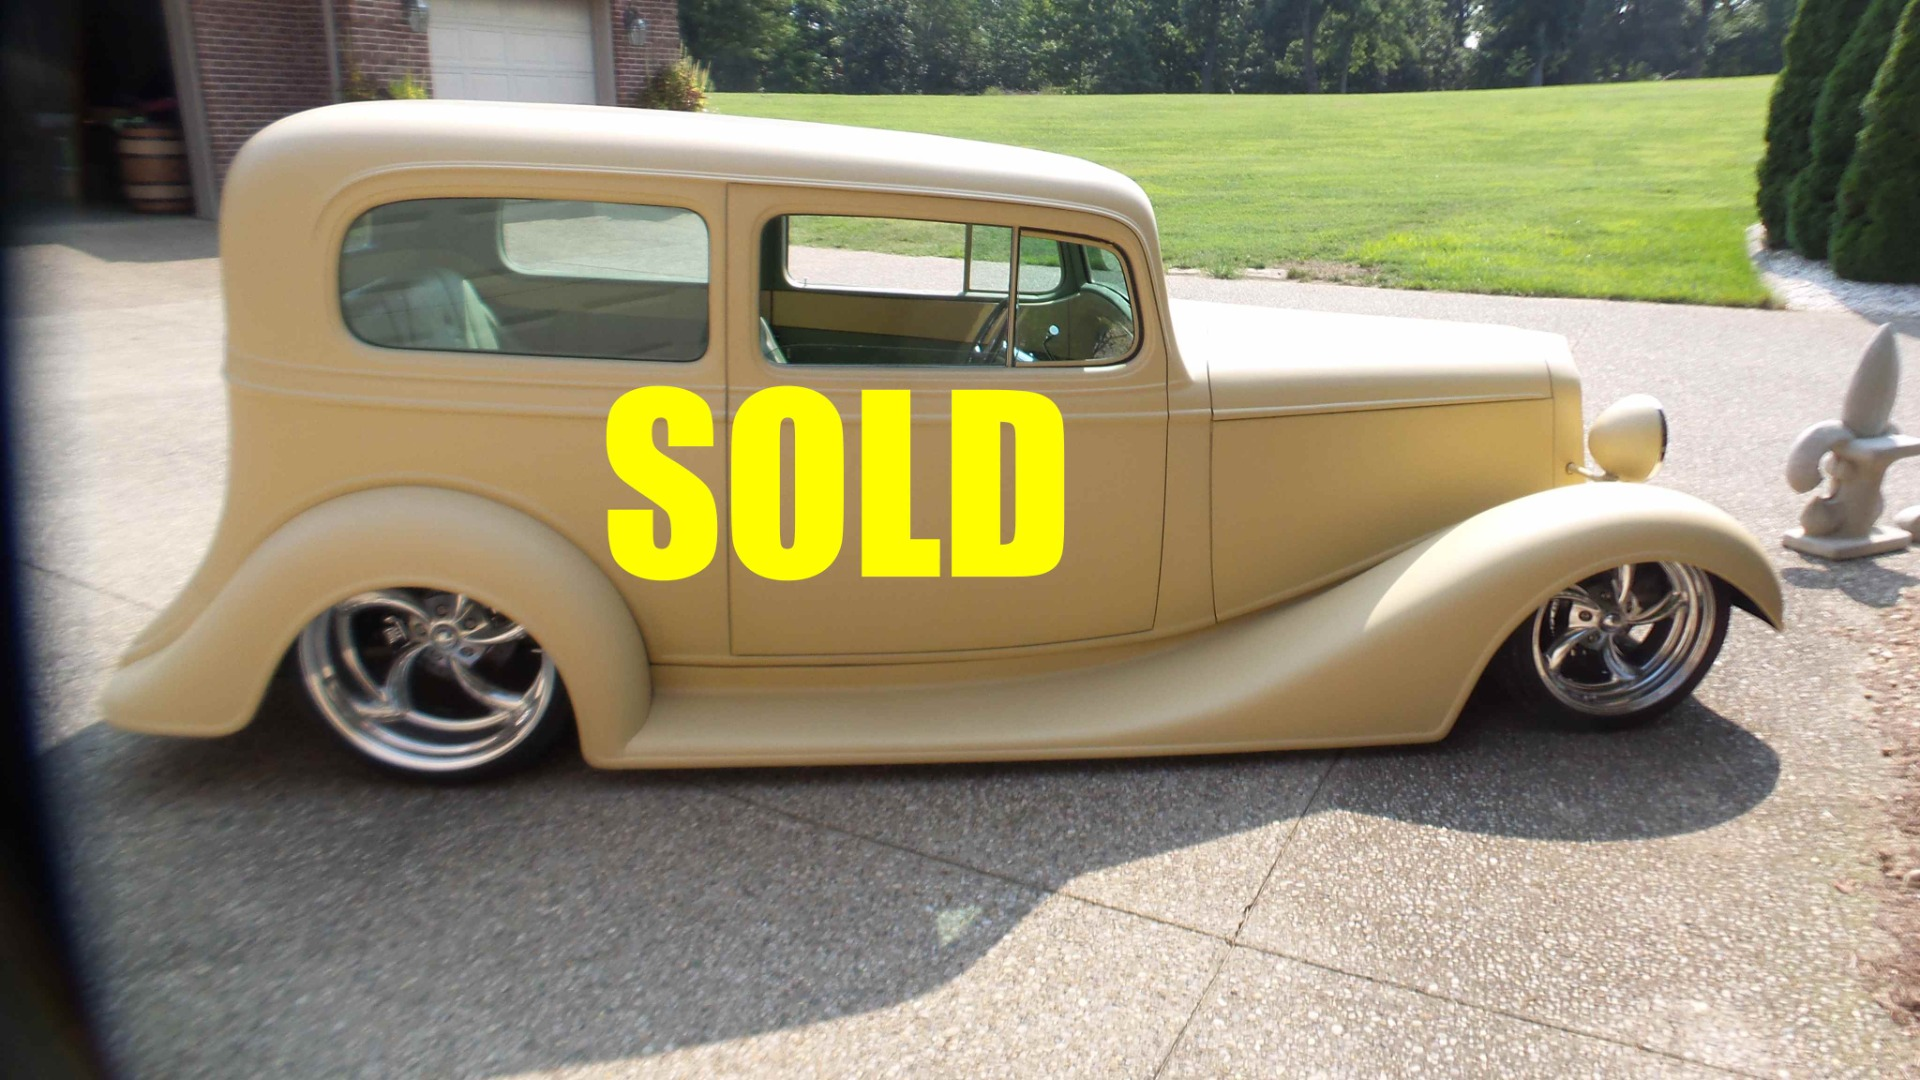 Used 1934 Chevrolet Sedan  97 , For Sale $55000, Call Us: (704) 996-3735